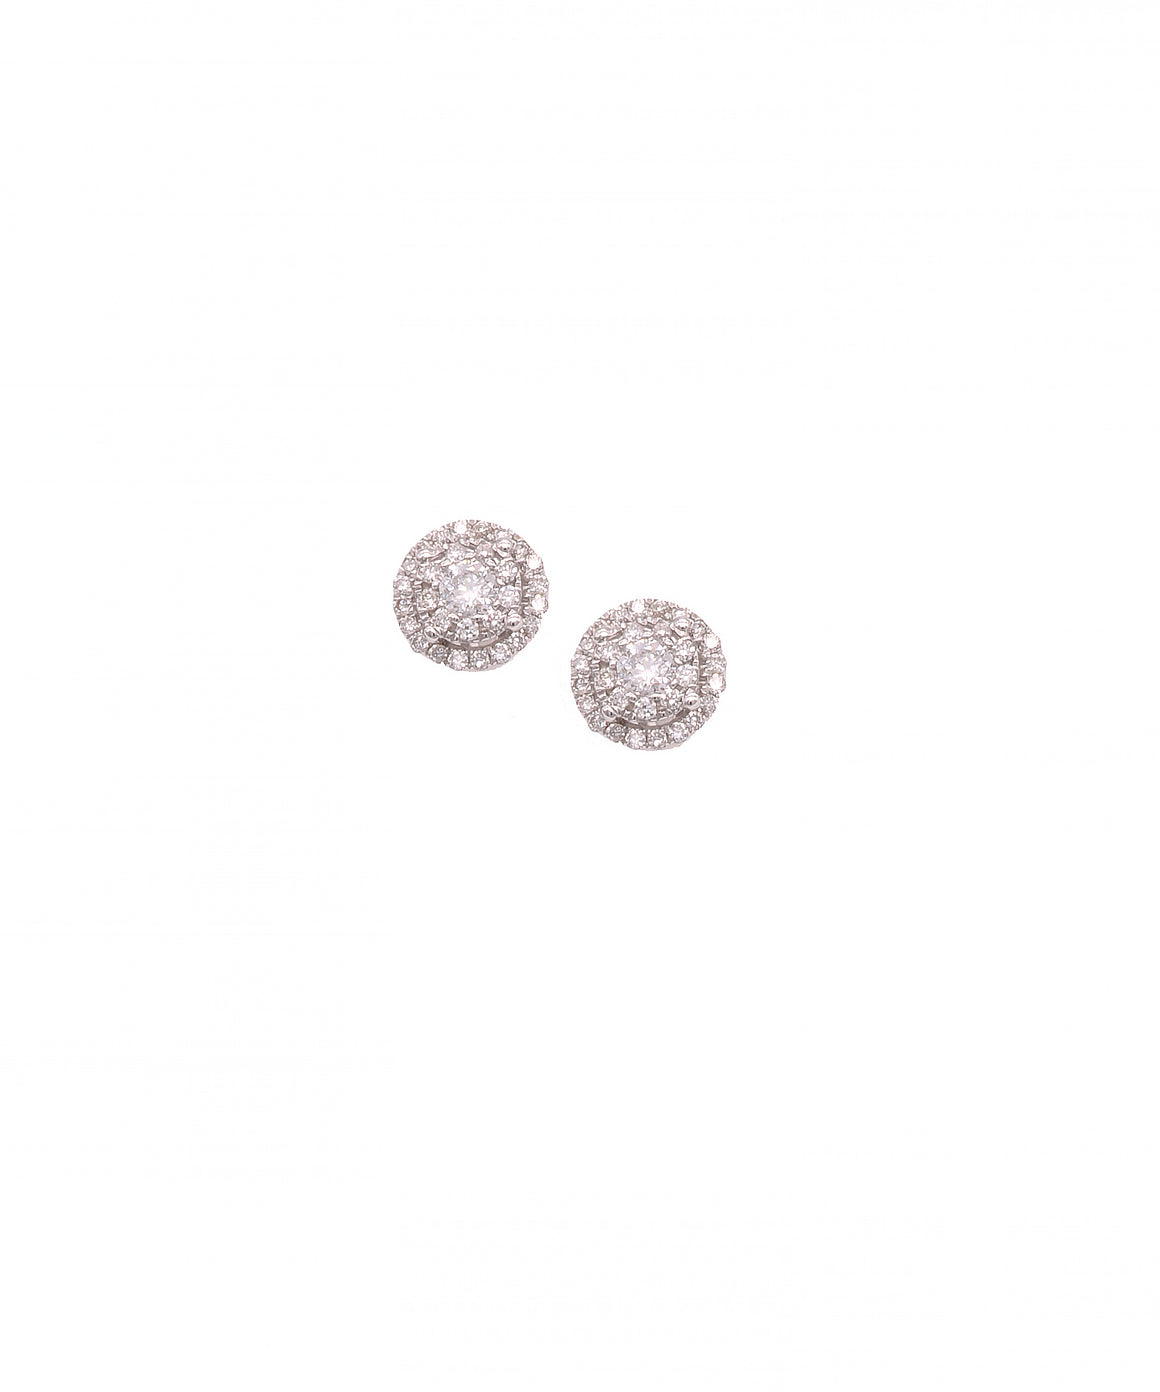 Clustered Diamond Stud Earrings - Lesley Ann Jewels